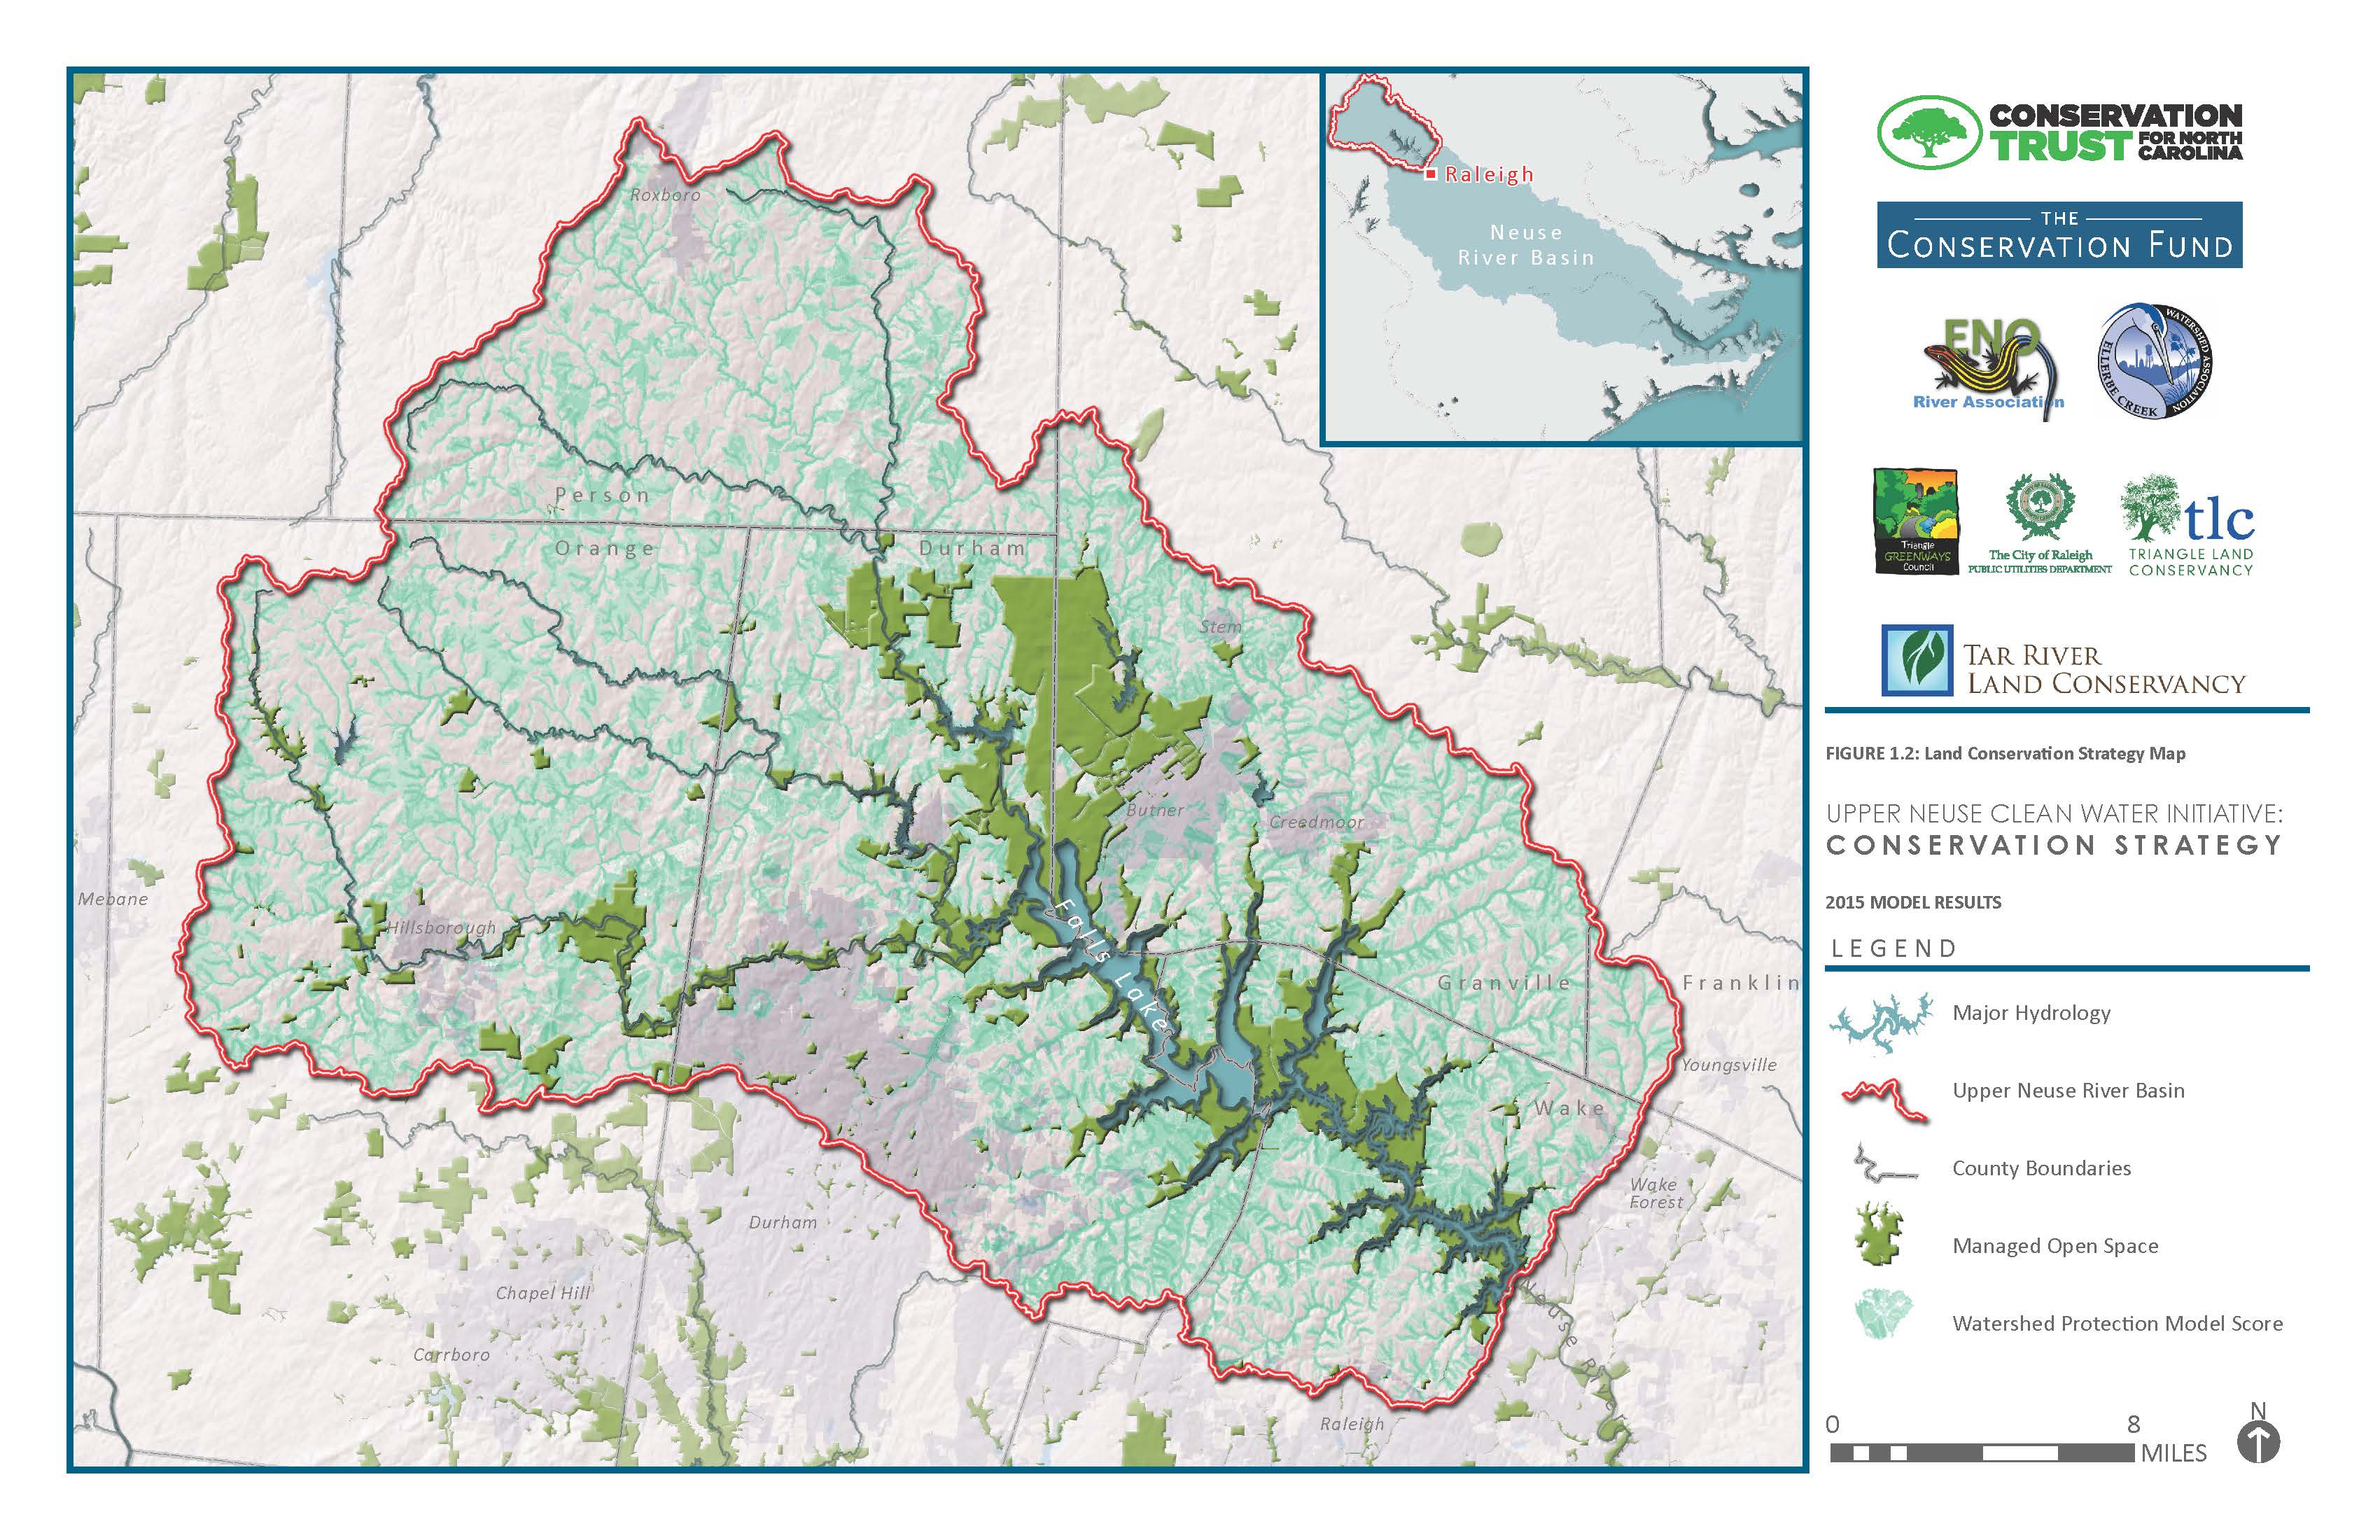 2015 model for the Upper Neuse Clean Water Initiative Conservation Strategy.